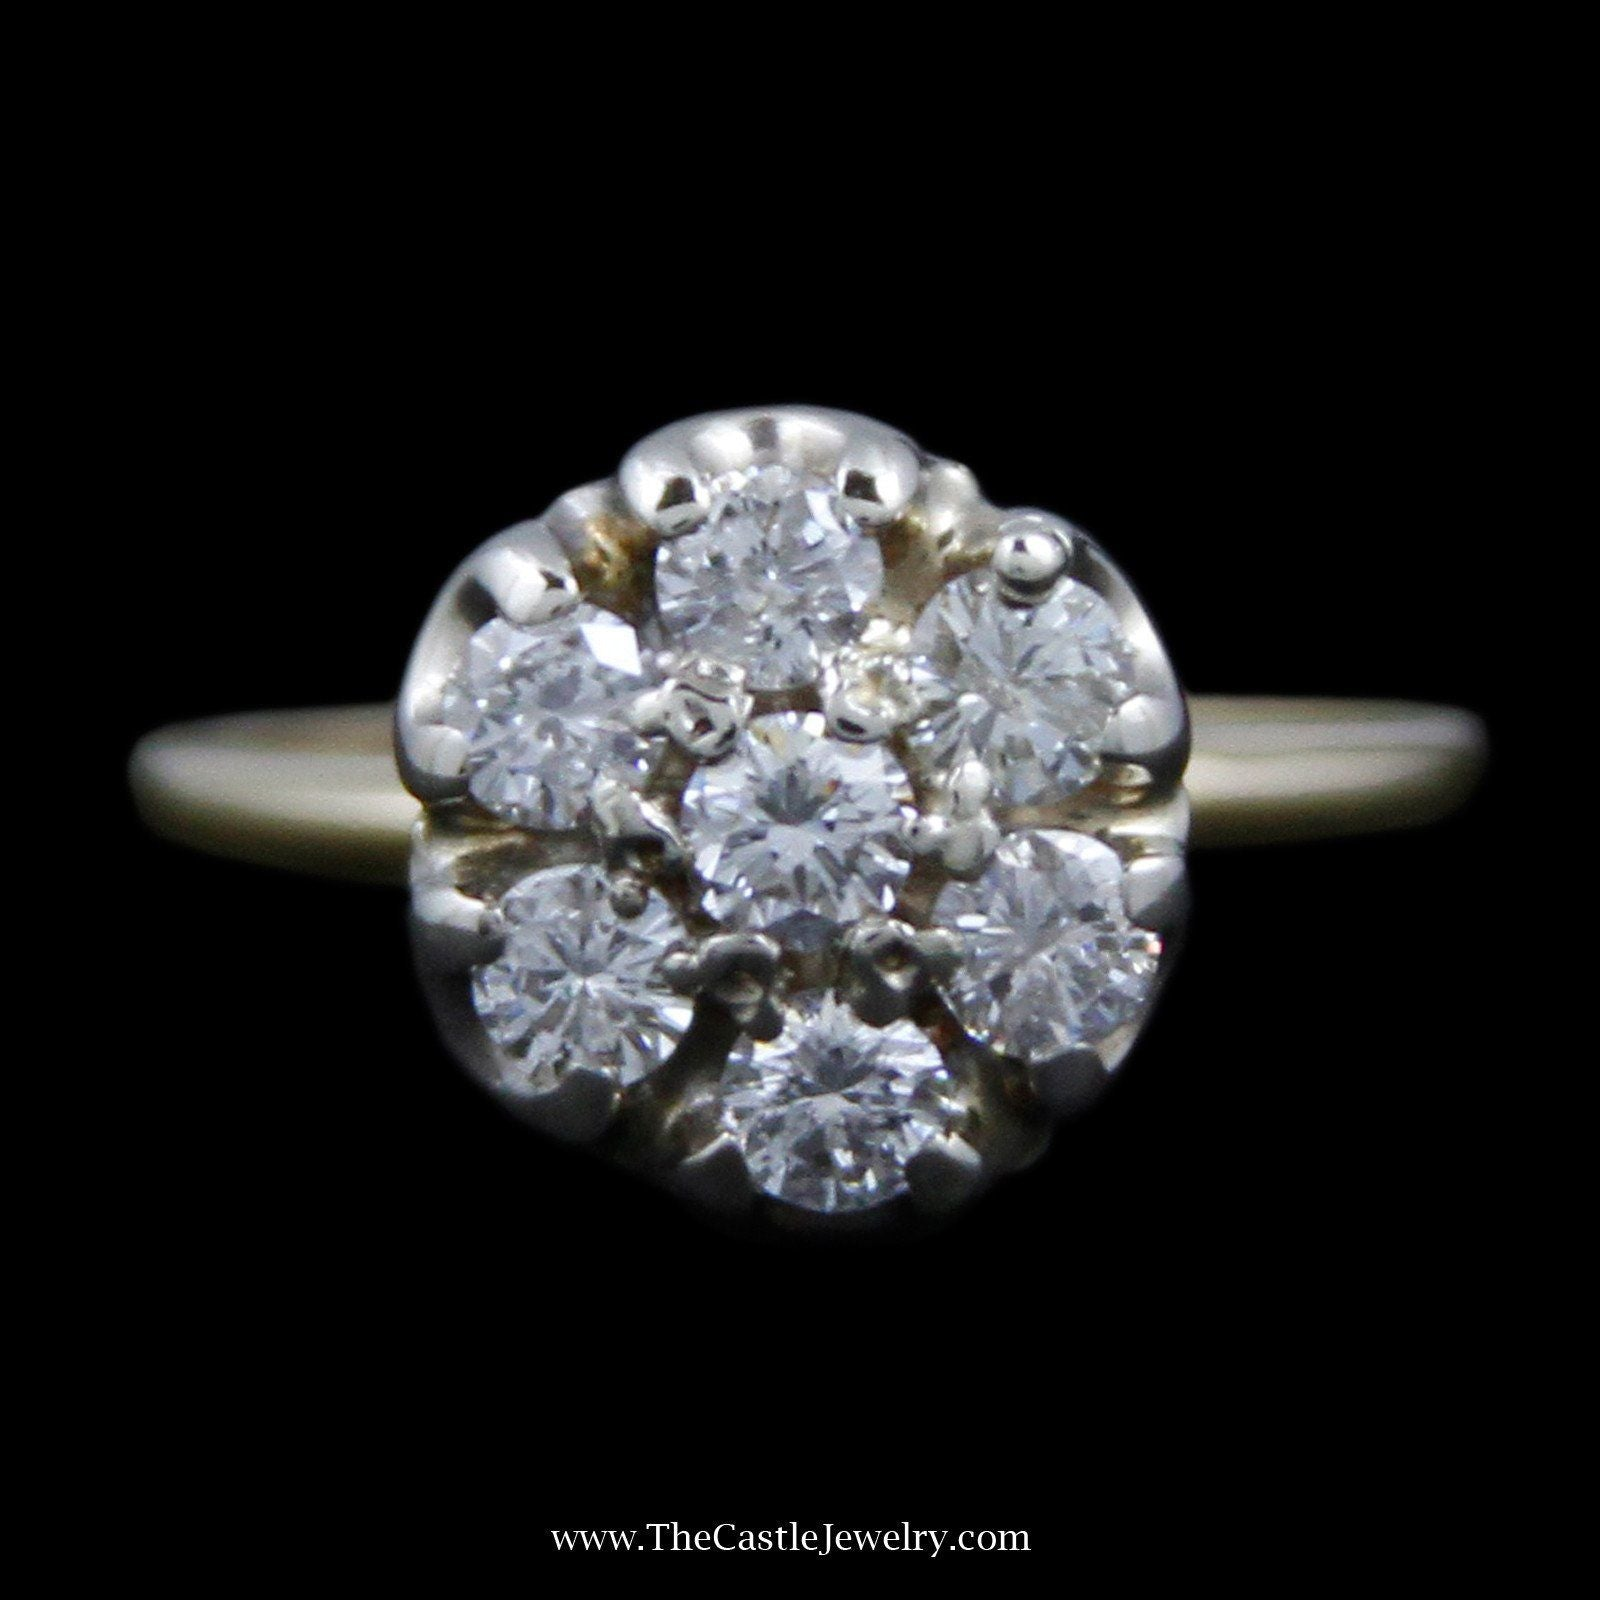 Stunning Round Diamond Cluster Ring w/ 7 Round Brilliant Cut Diamonds in 14k Yellow Gold